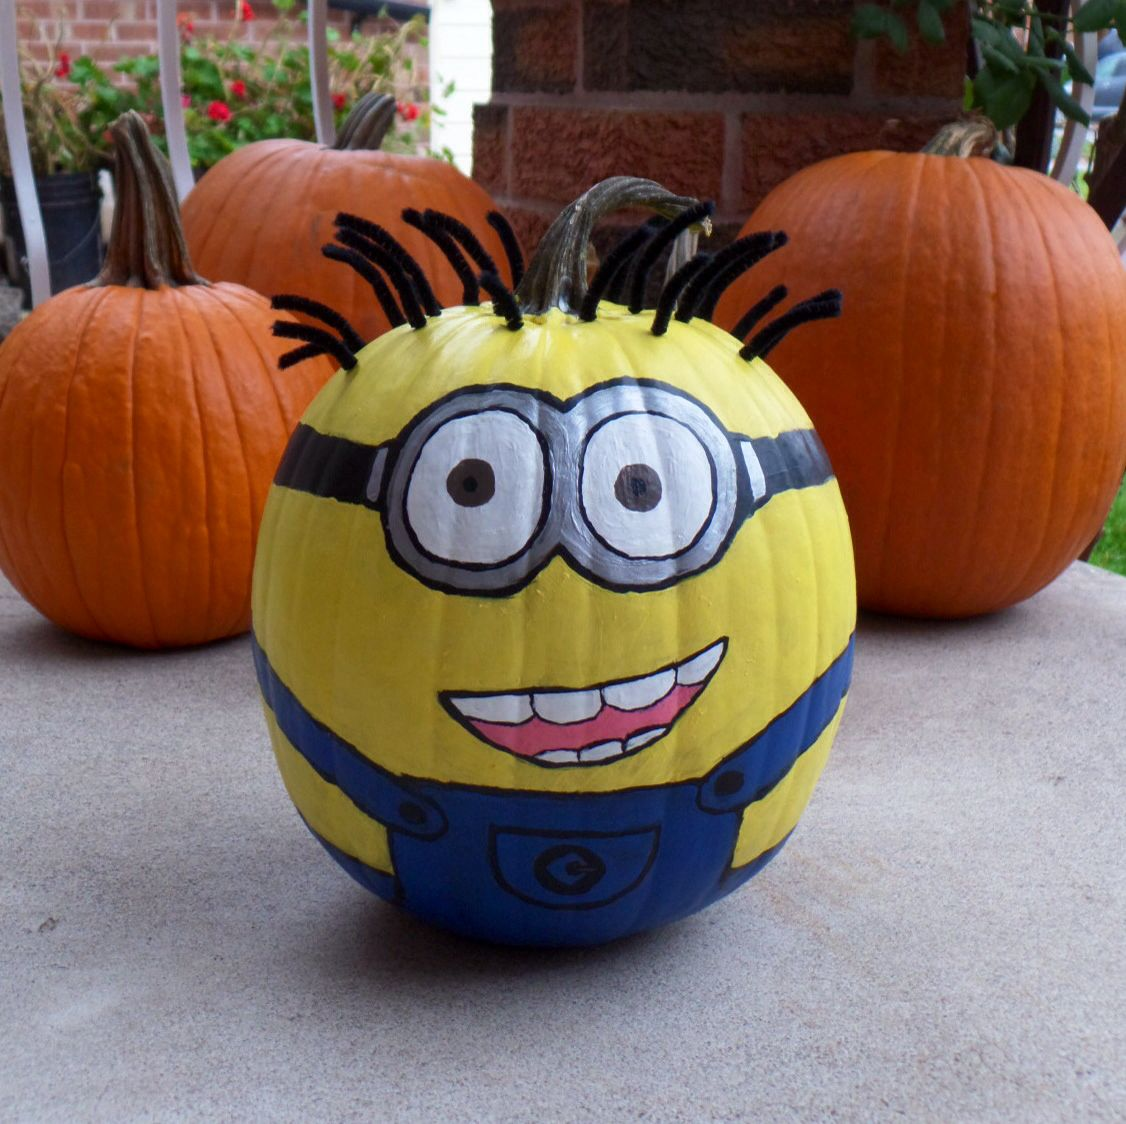 76 perfectly painted pumpkins, no carve, for halloween!